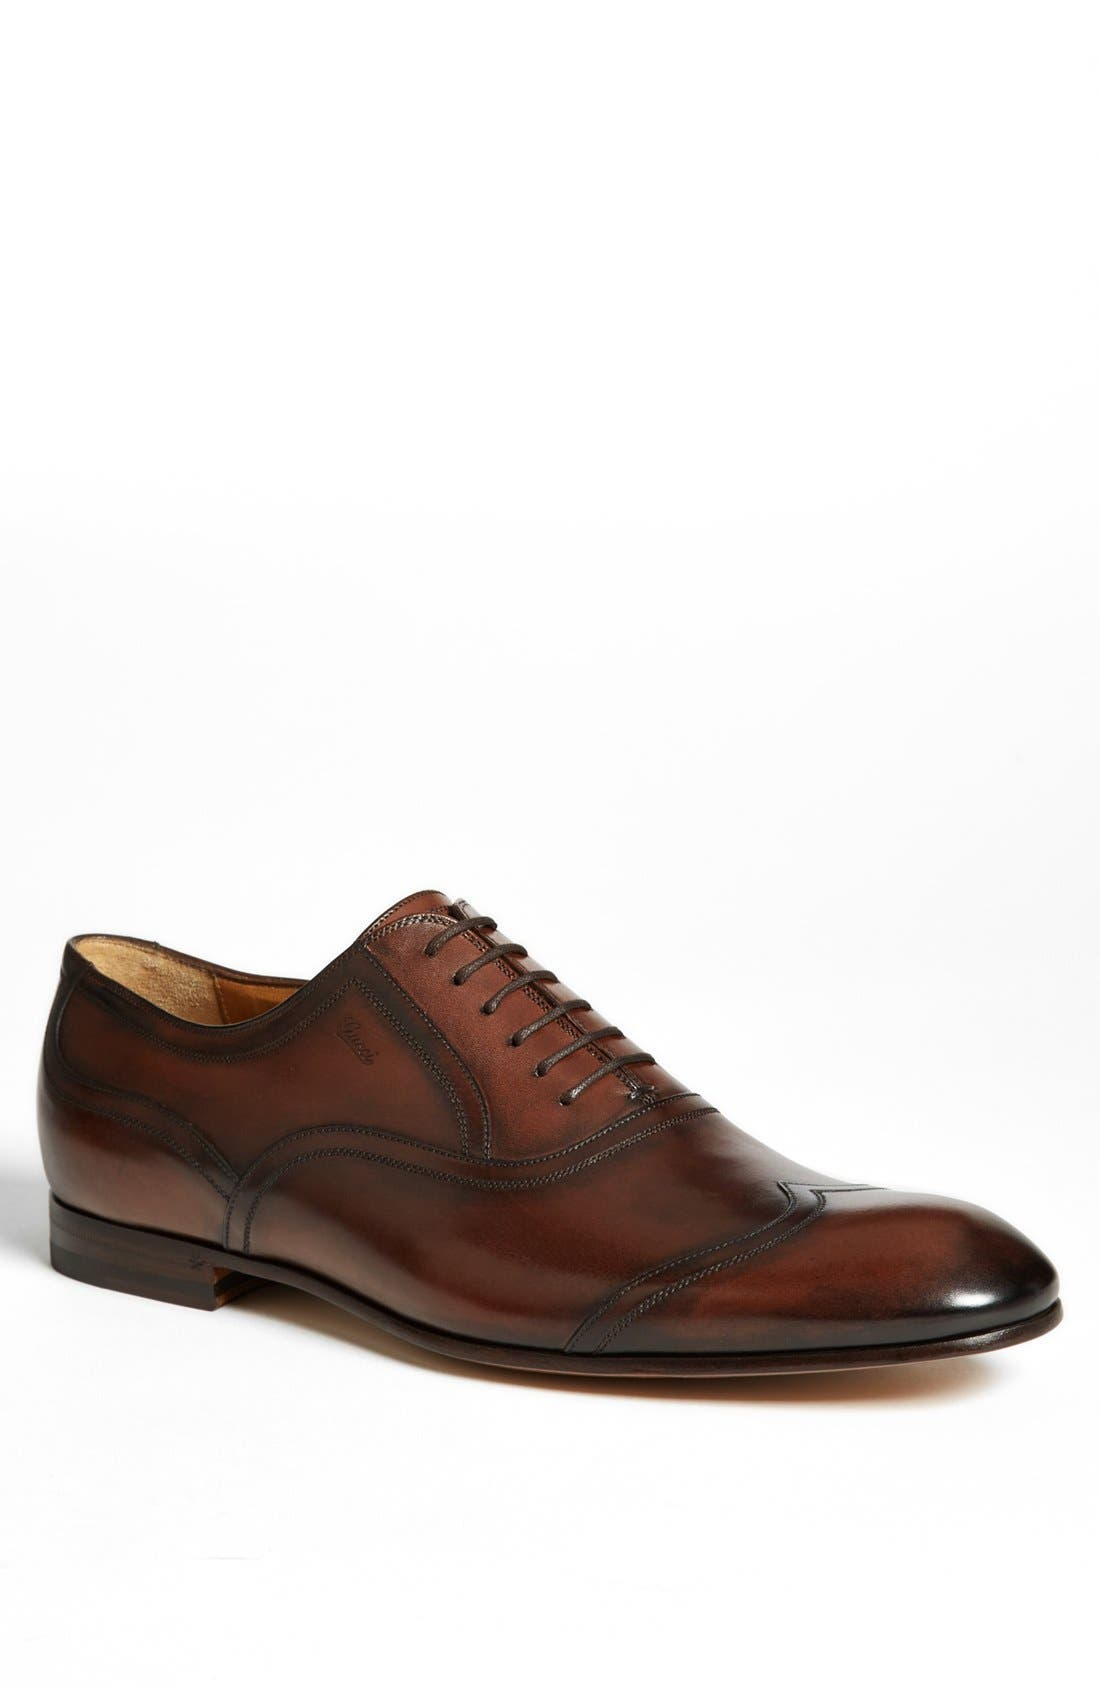 Main Image - Gucci 'Phil' Wingtip